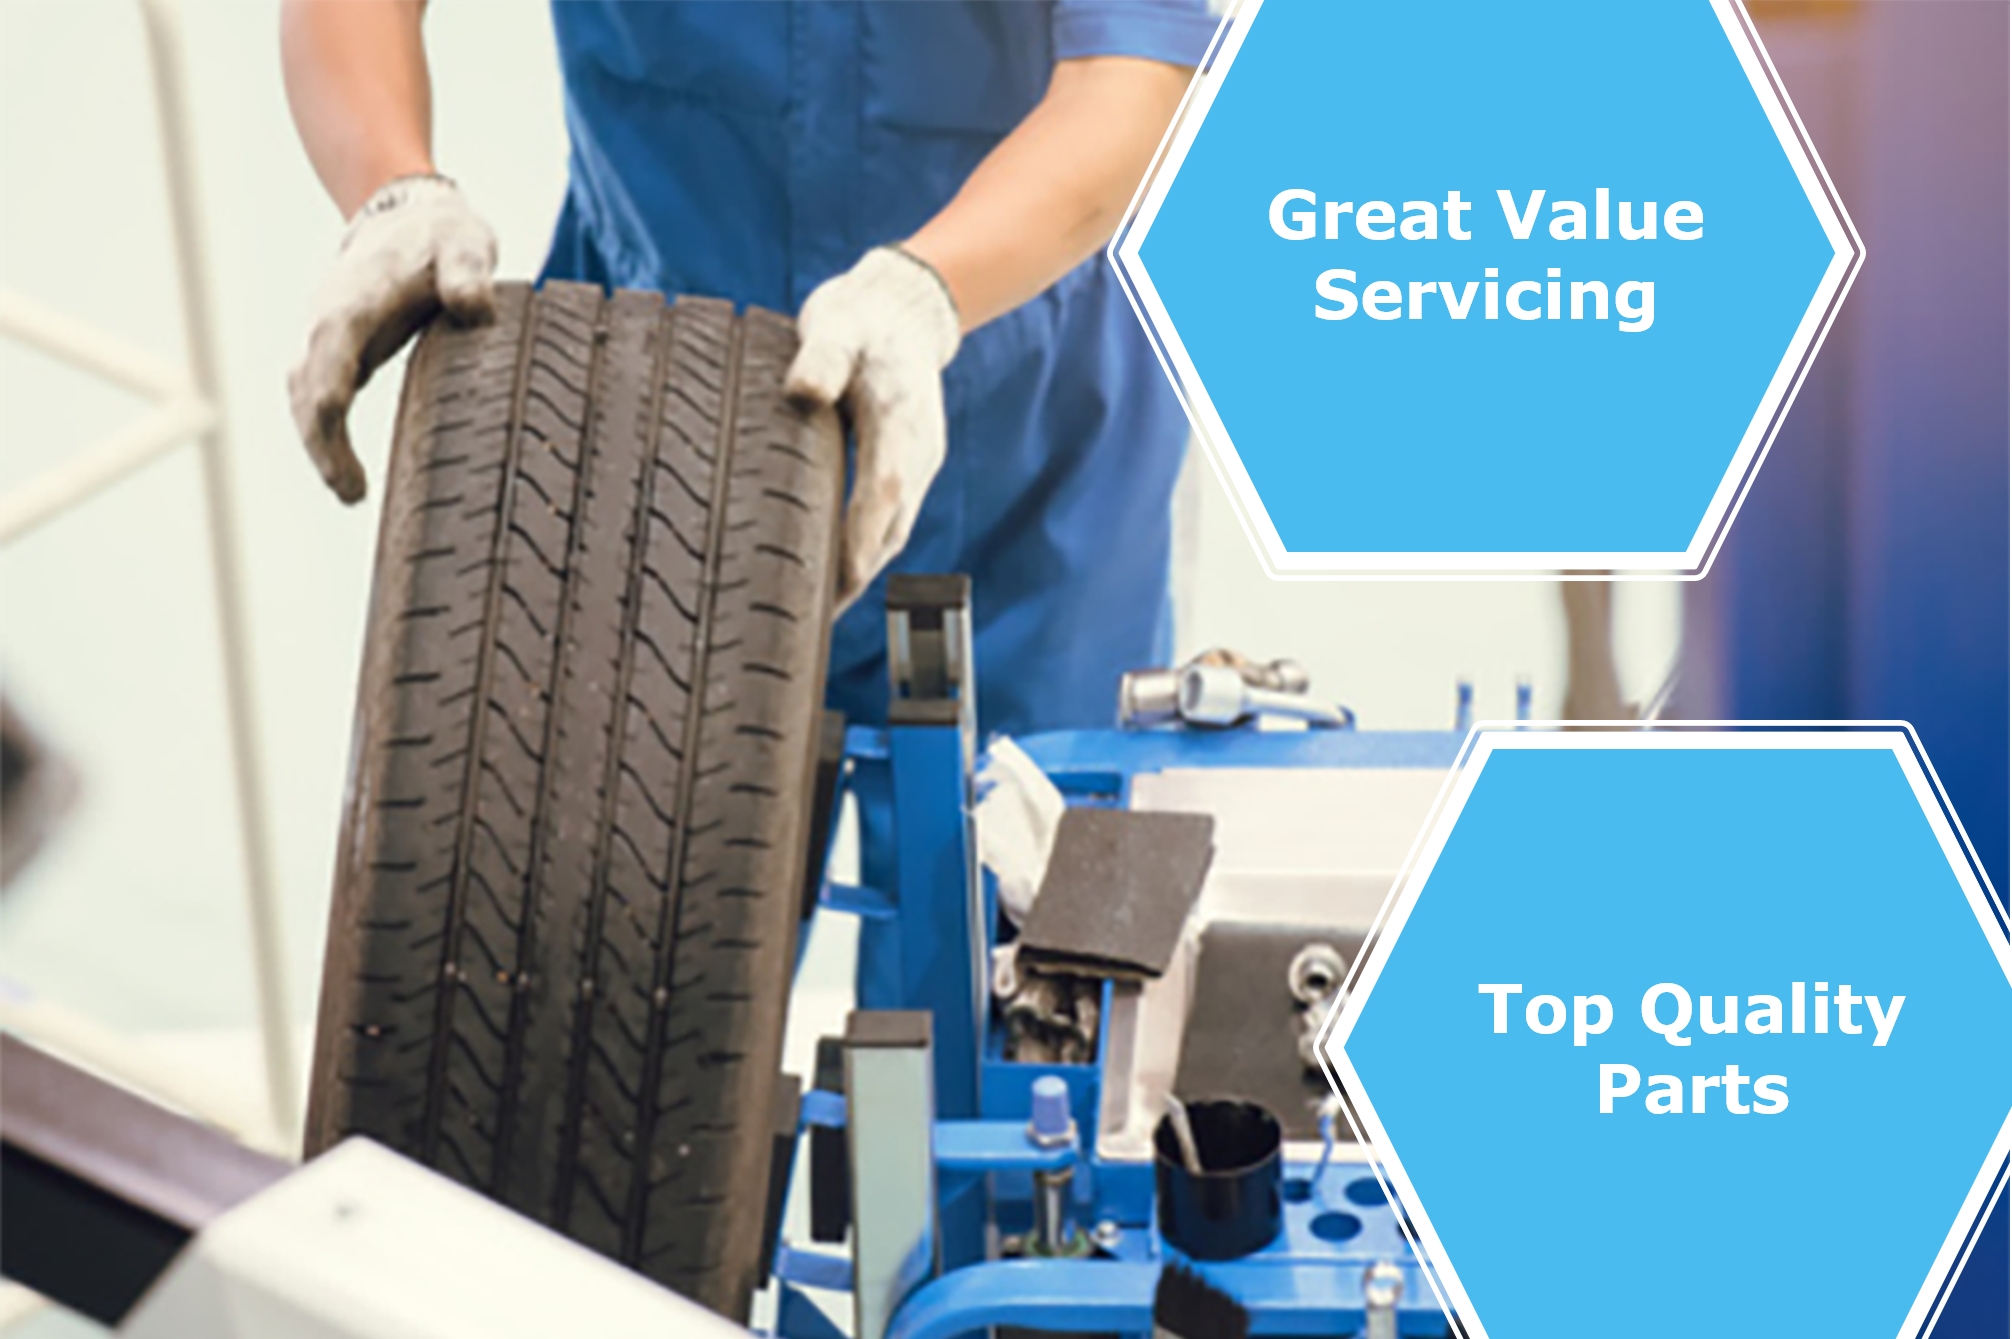 Vehicle servicing - great value servicing - top quality parts